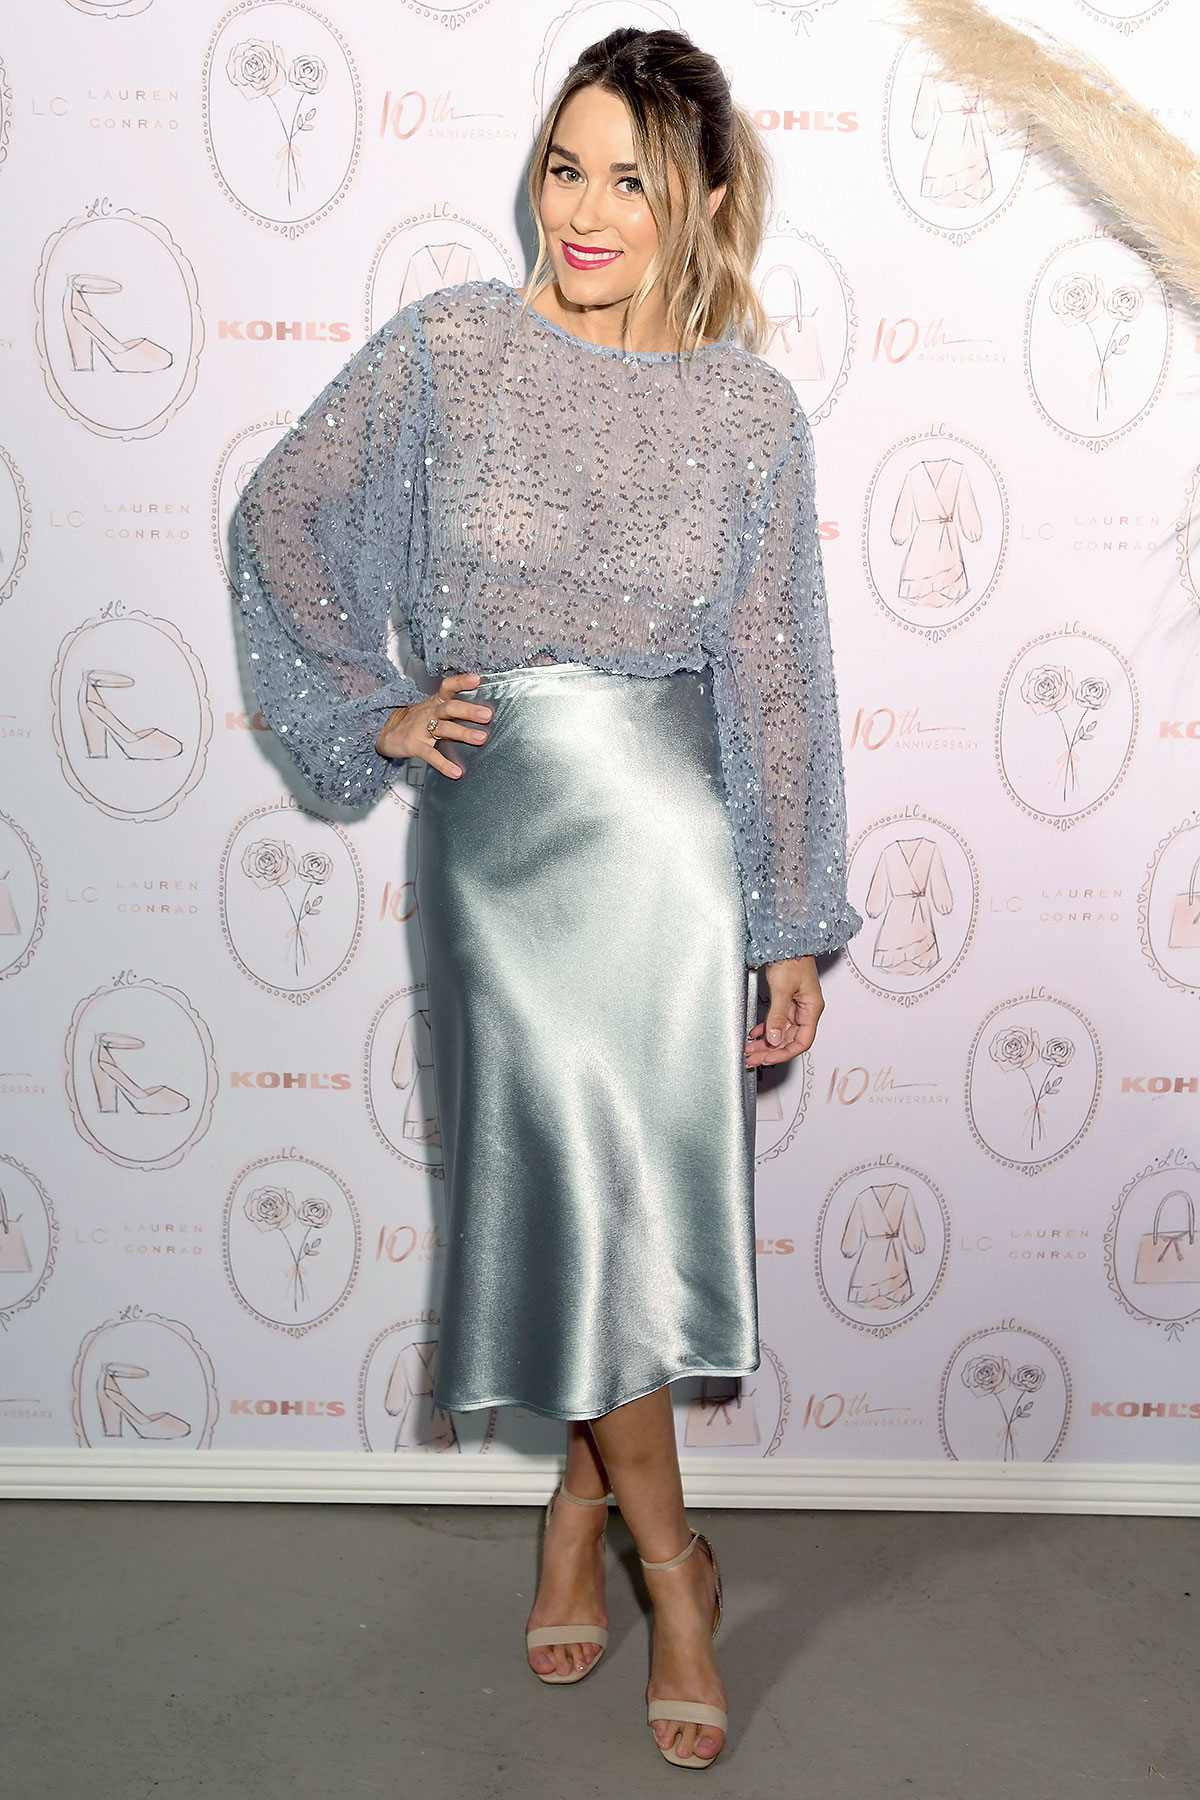 Lauren Conrad Celebrates Her 10th Anniversary Collection At Kohl's